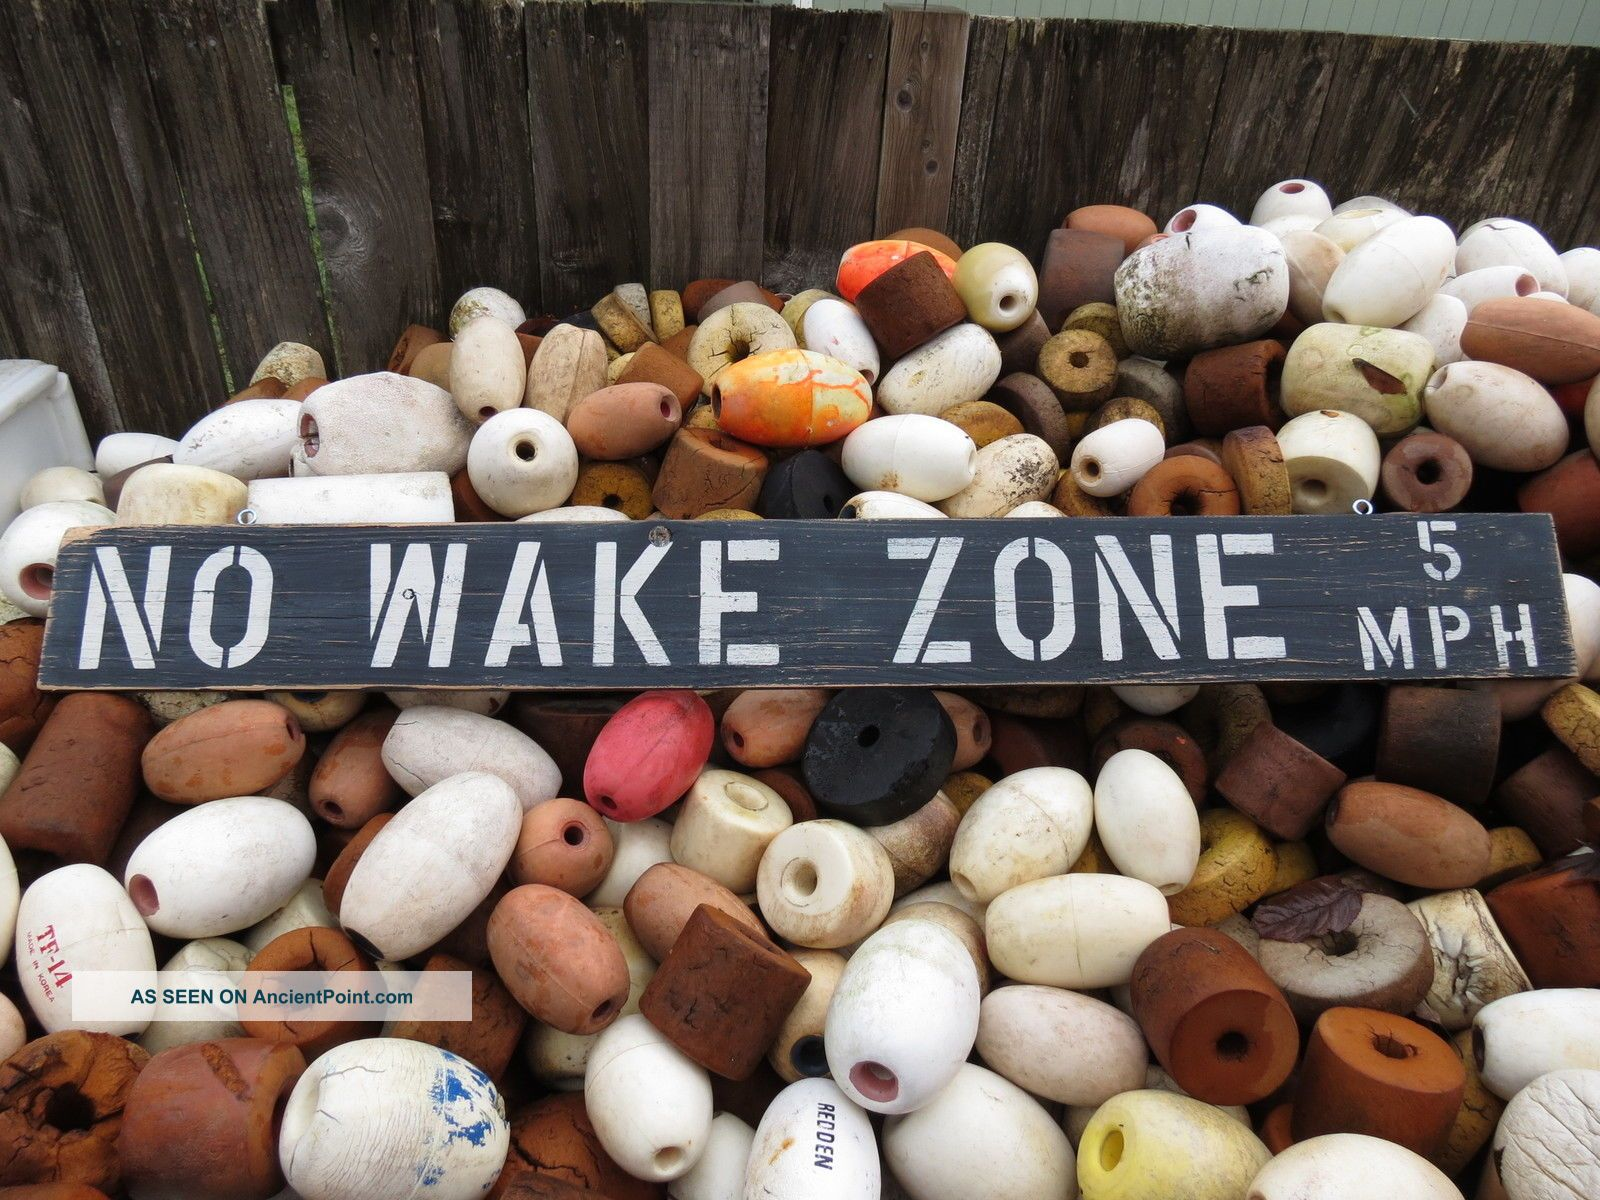 48 Inch Wood Hand Painted No Wake Zone 5mph Sign Nautical Seafood (s522) Plaques & Signs photo